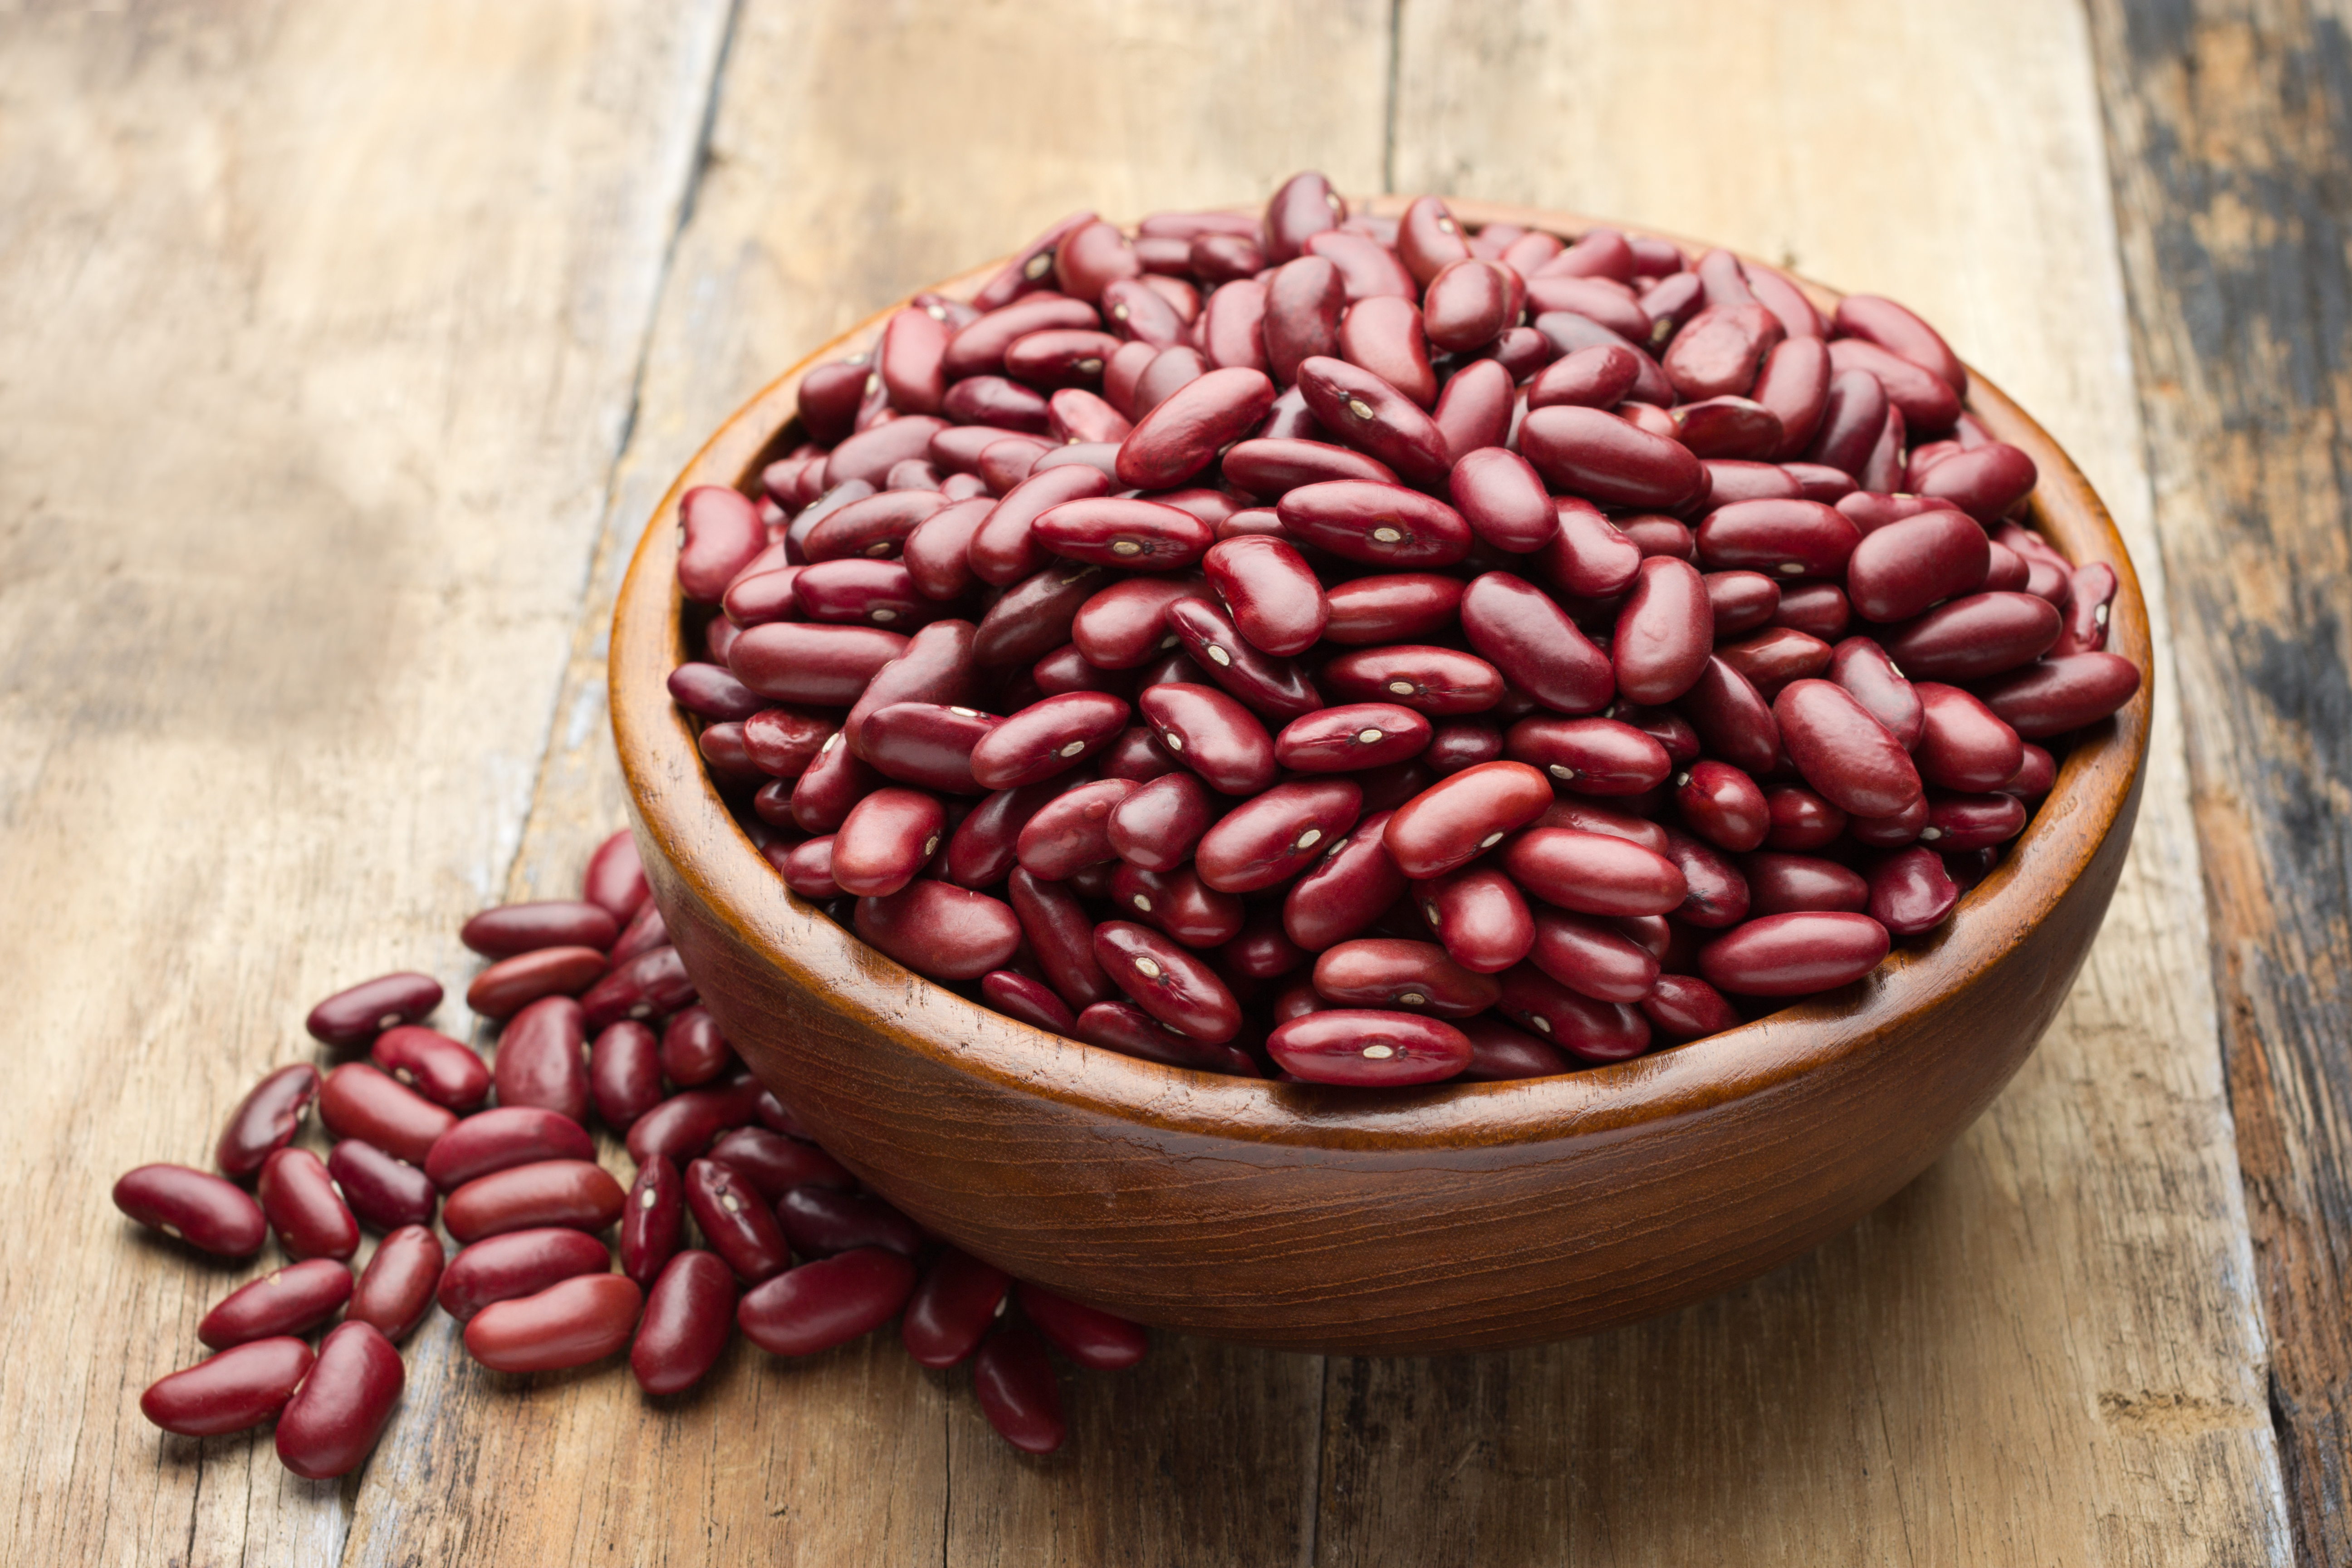 What Is The Difference Between Great Northern Beans And Pinto Beans